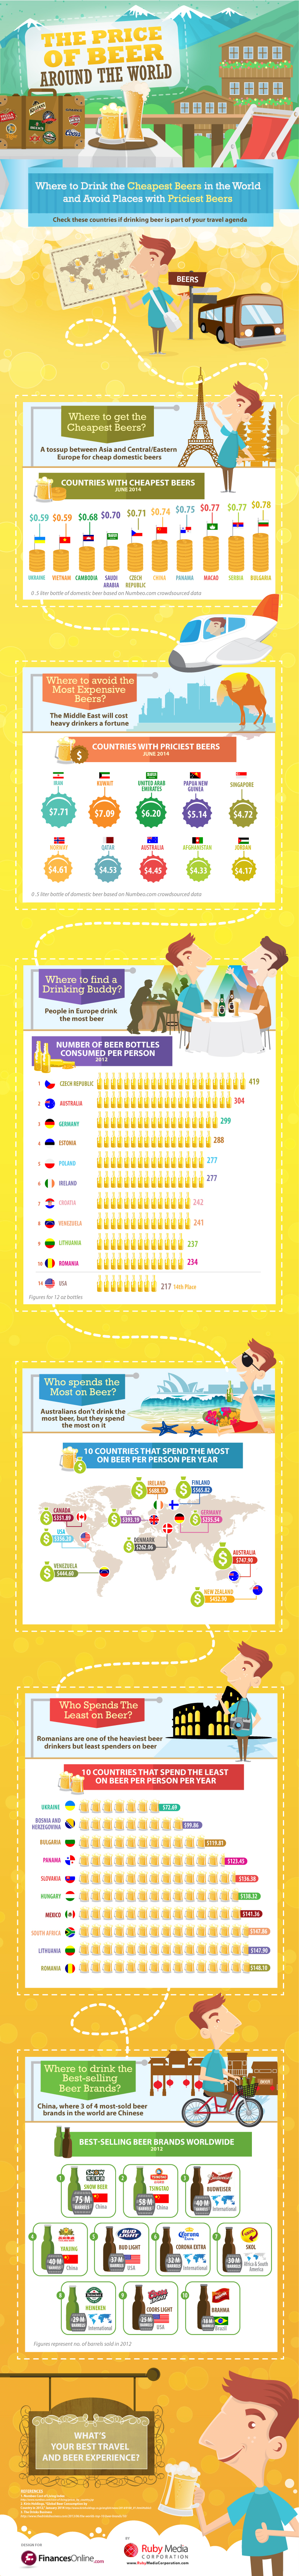 Travel and Beer_Infographic_full design